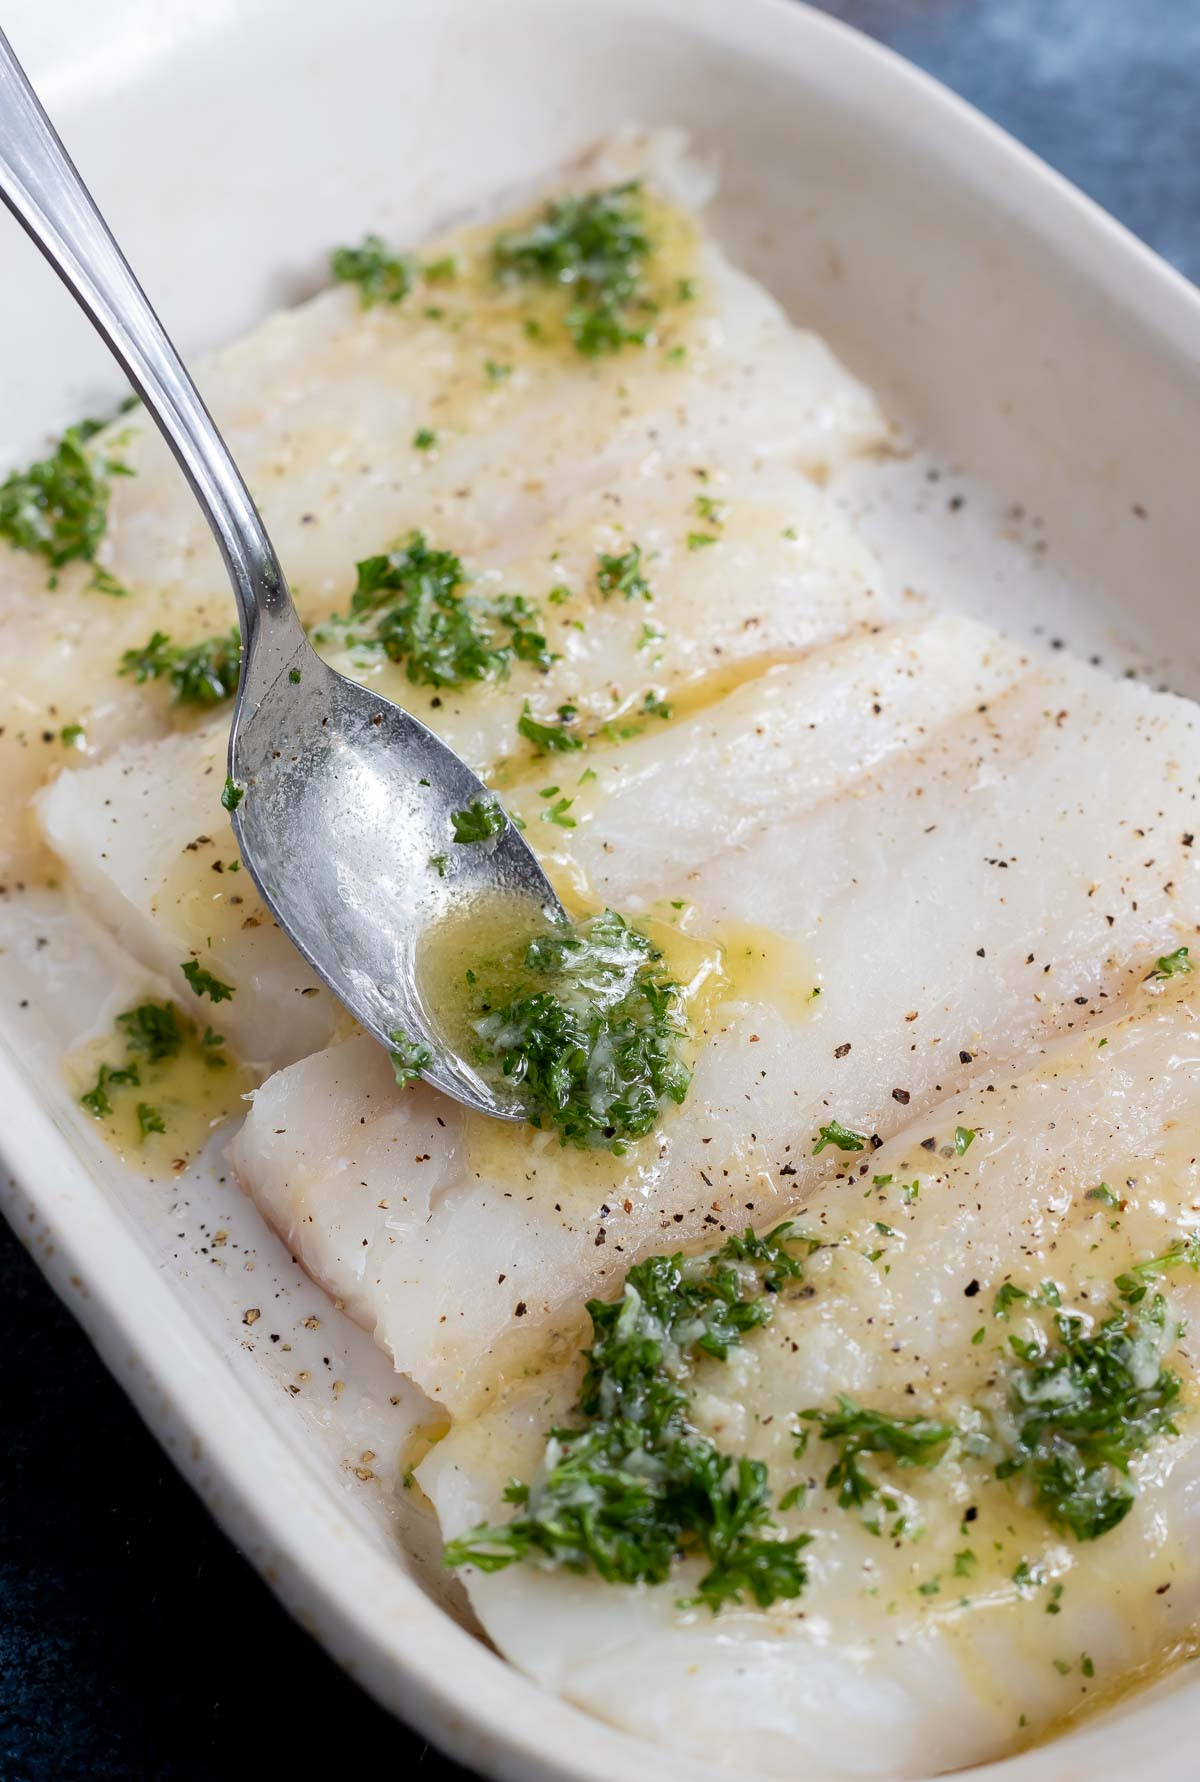 raw cod fillets in white roasting dish with spoon drizzling melted butter and parsley on top